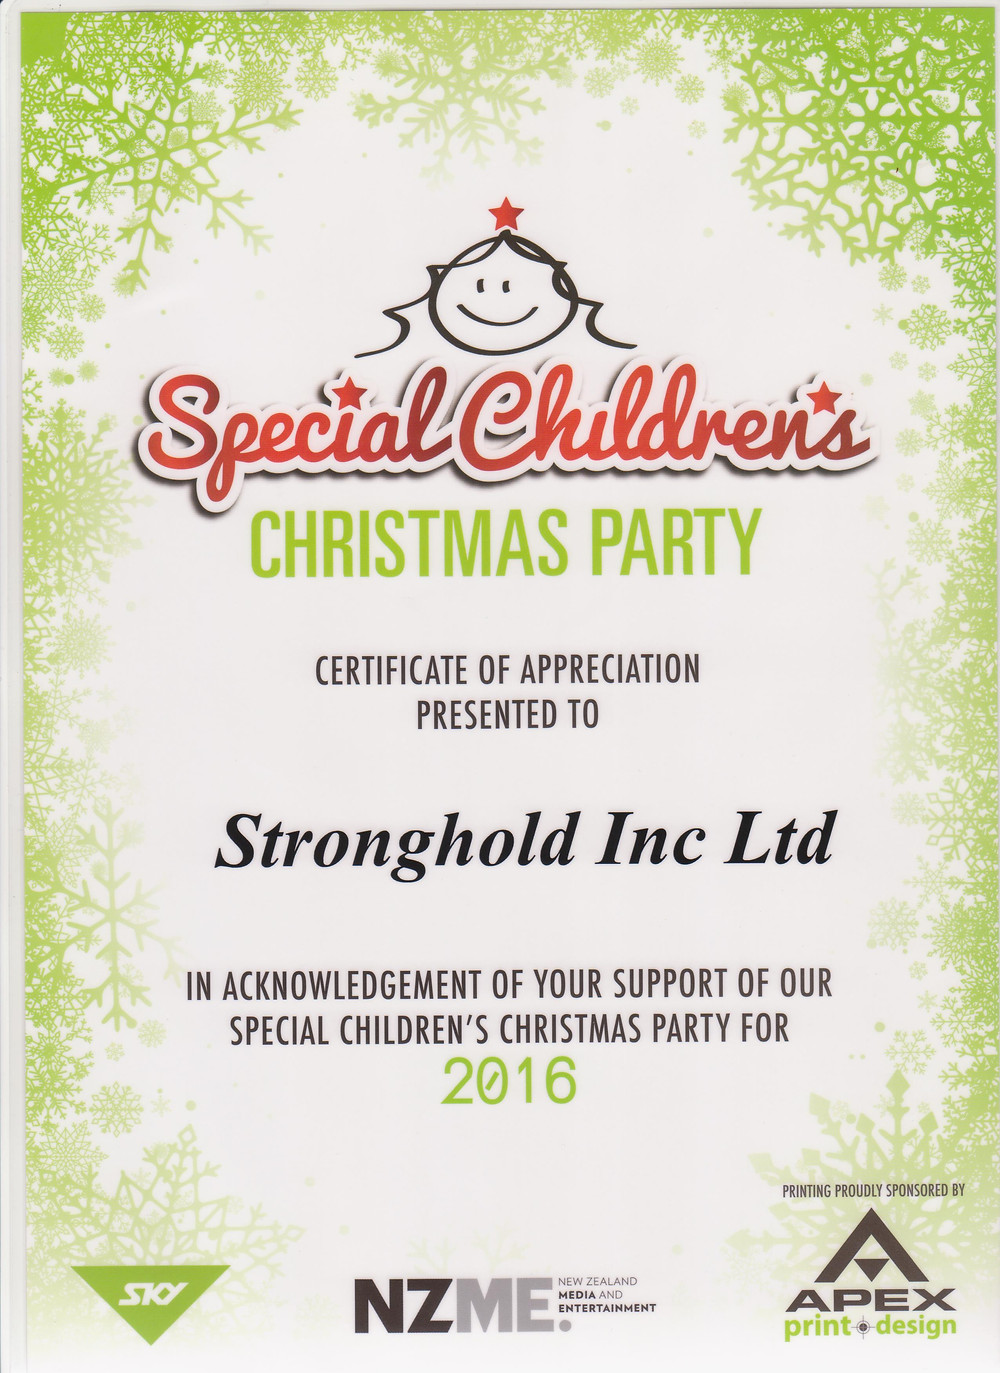 Special Children's Christmas Party 2016